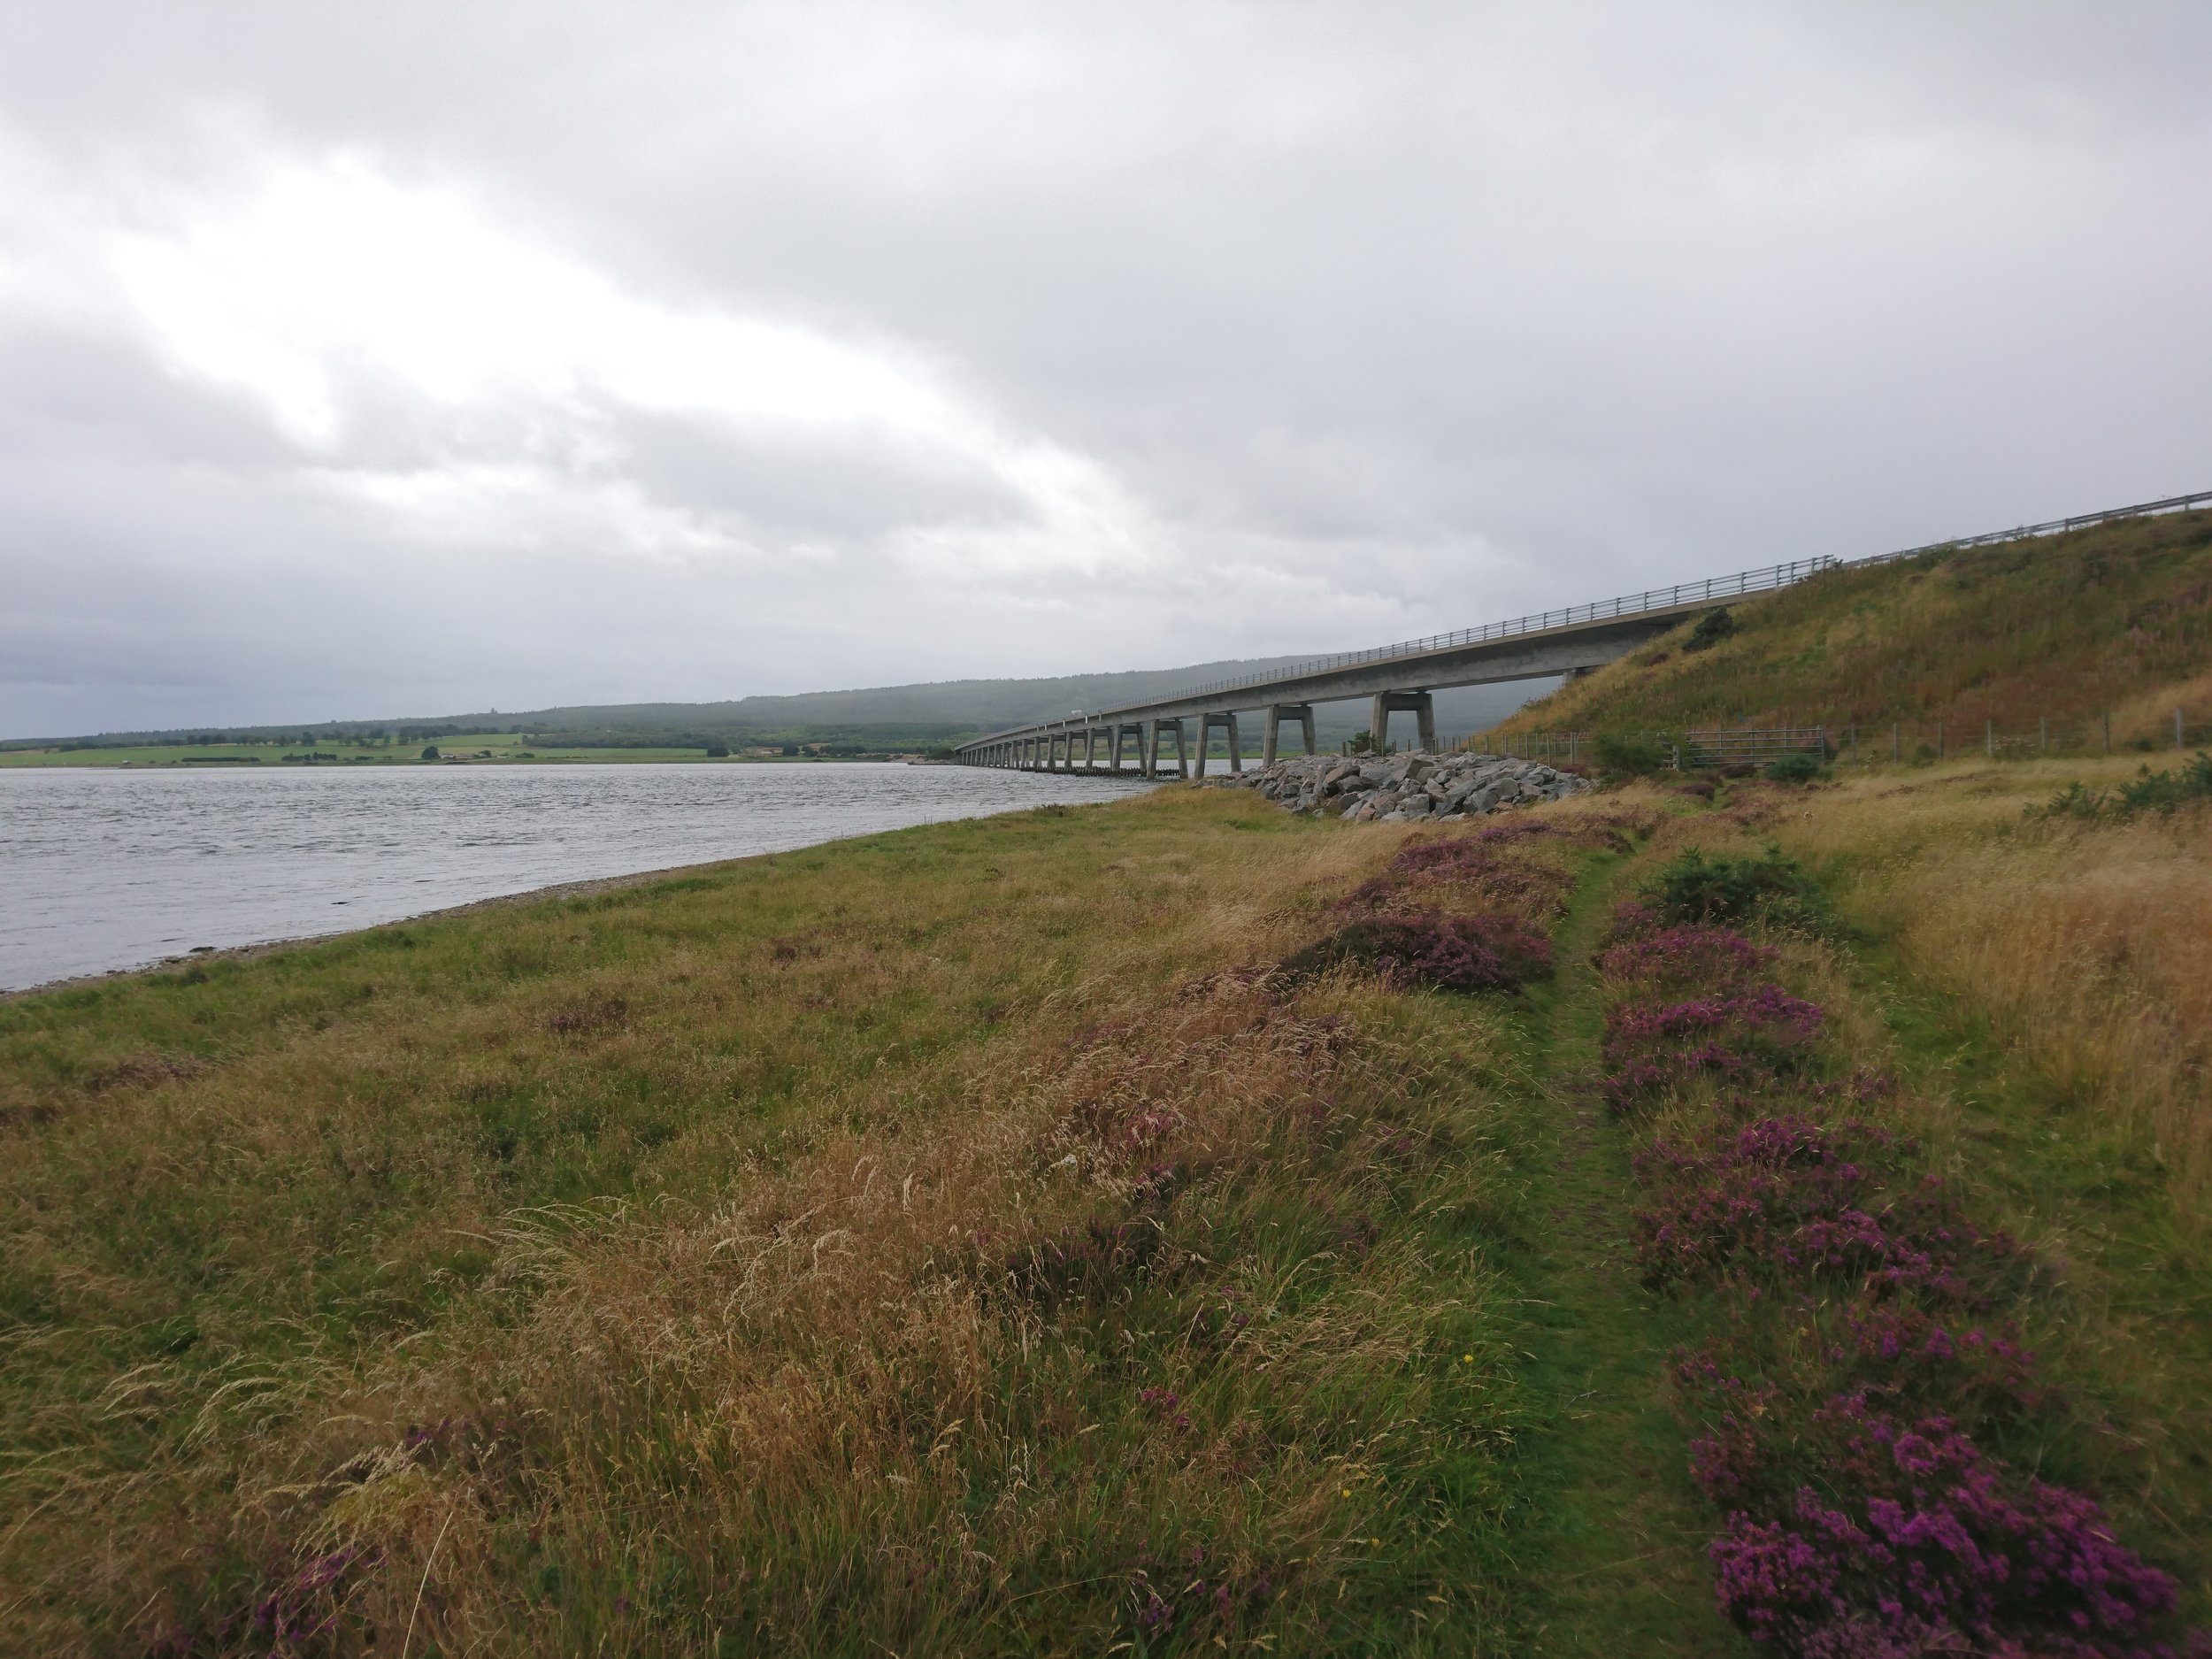 Approaching Dornoch Firth Bridge